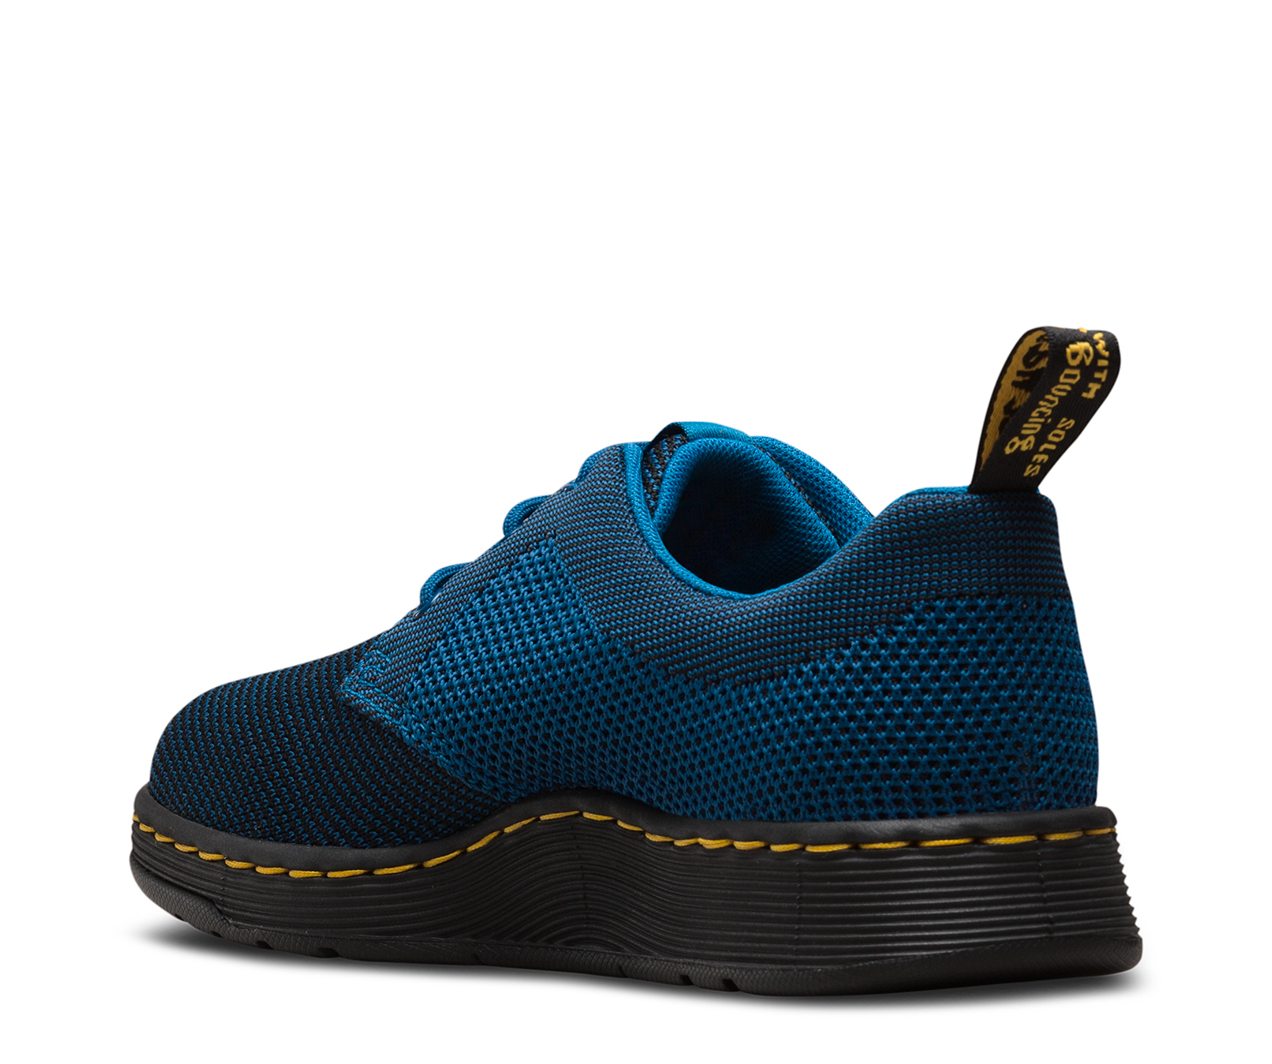 Cavendish Knit Womens Shoes Dr Martens Official Site